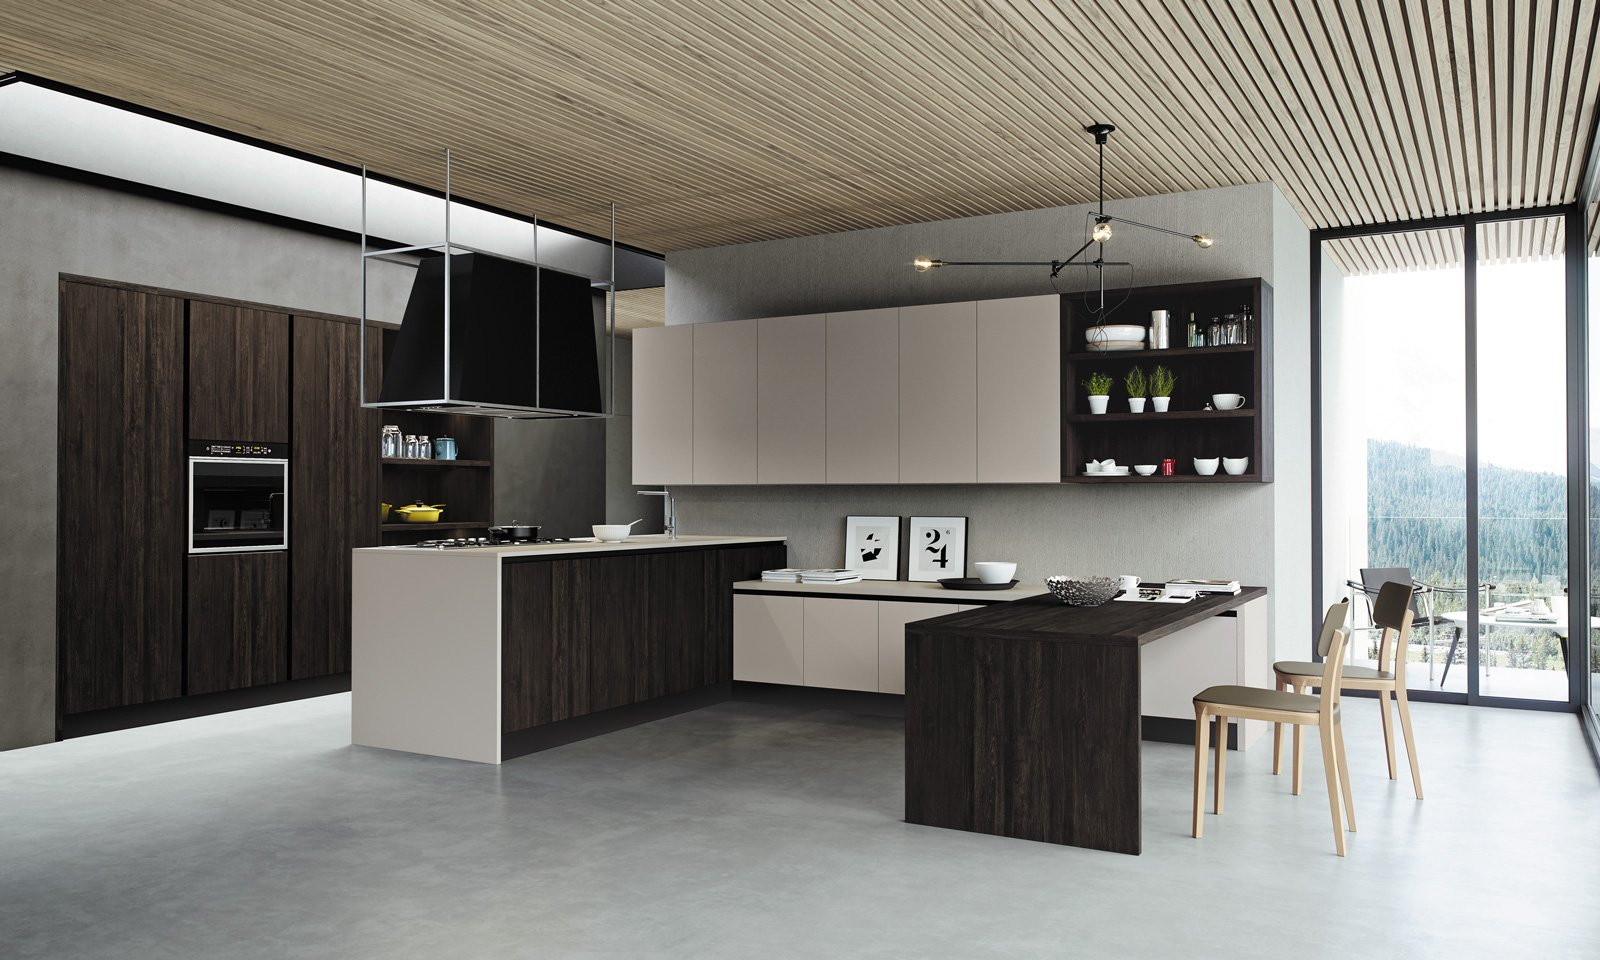 Come Progettare Una Cucina. Beautiful Cucina Open Space Foto Tempo ...